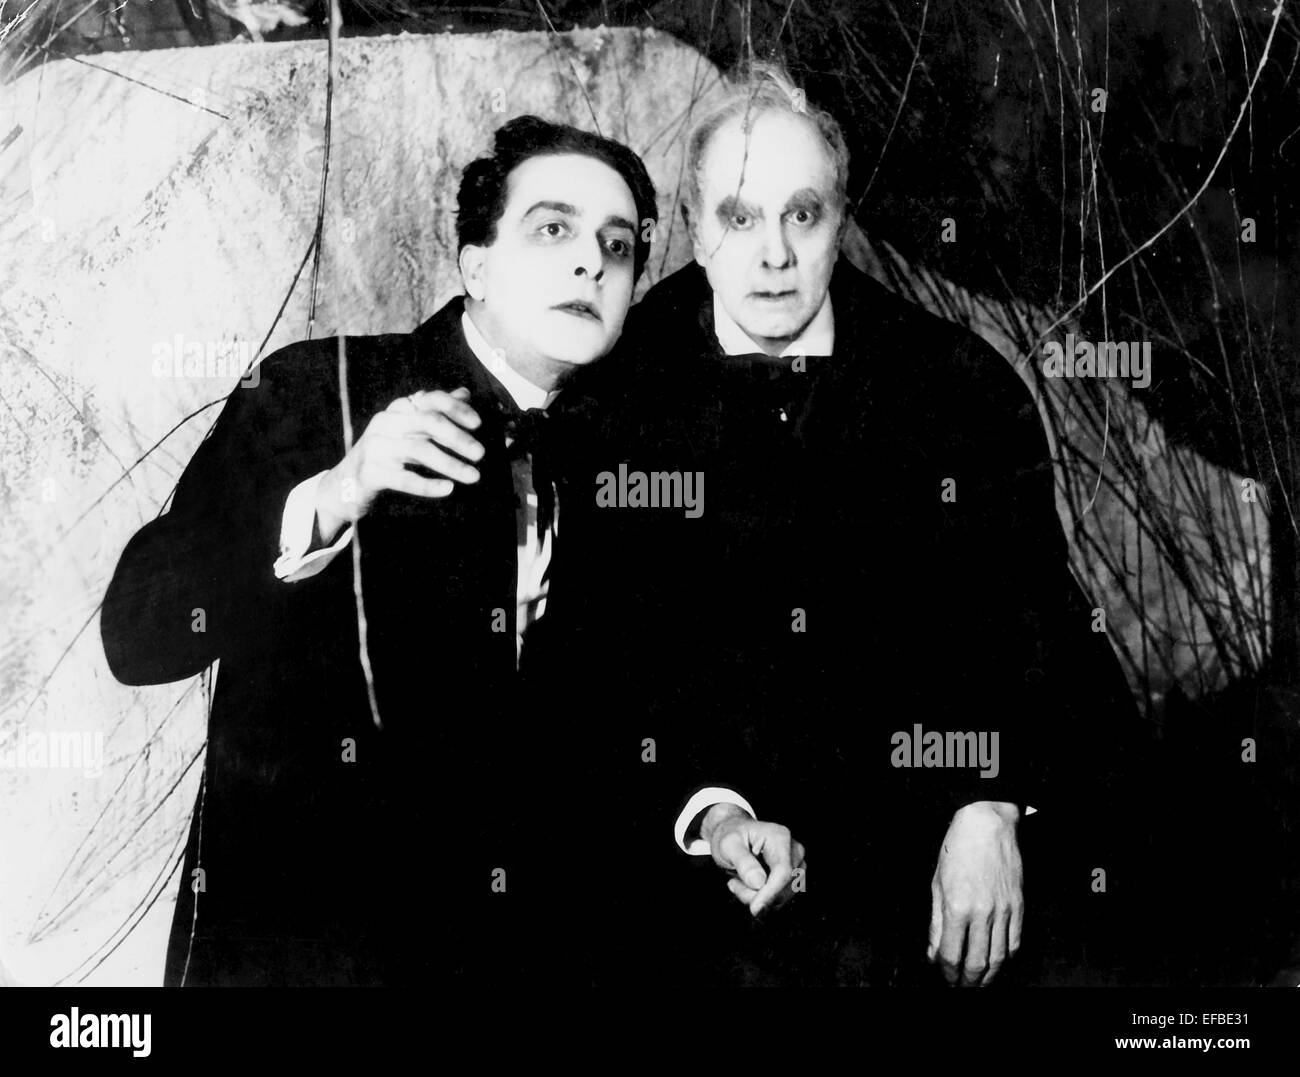 FRIEDRICH FEHER THE CABINET OF DR. CALIGARI (1920 Stock Photo ...